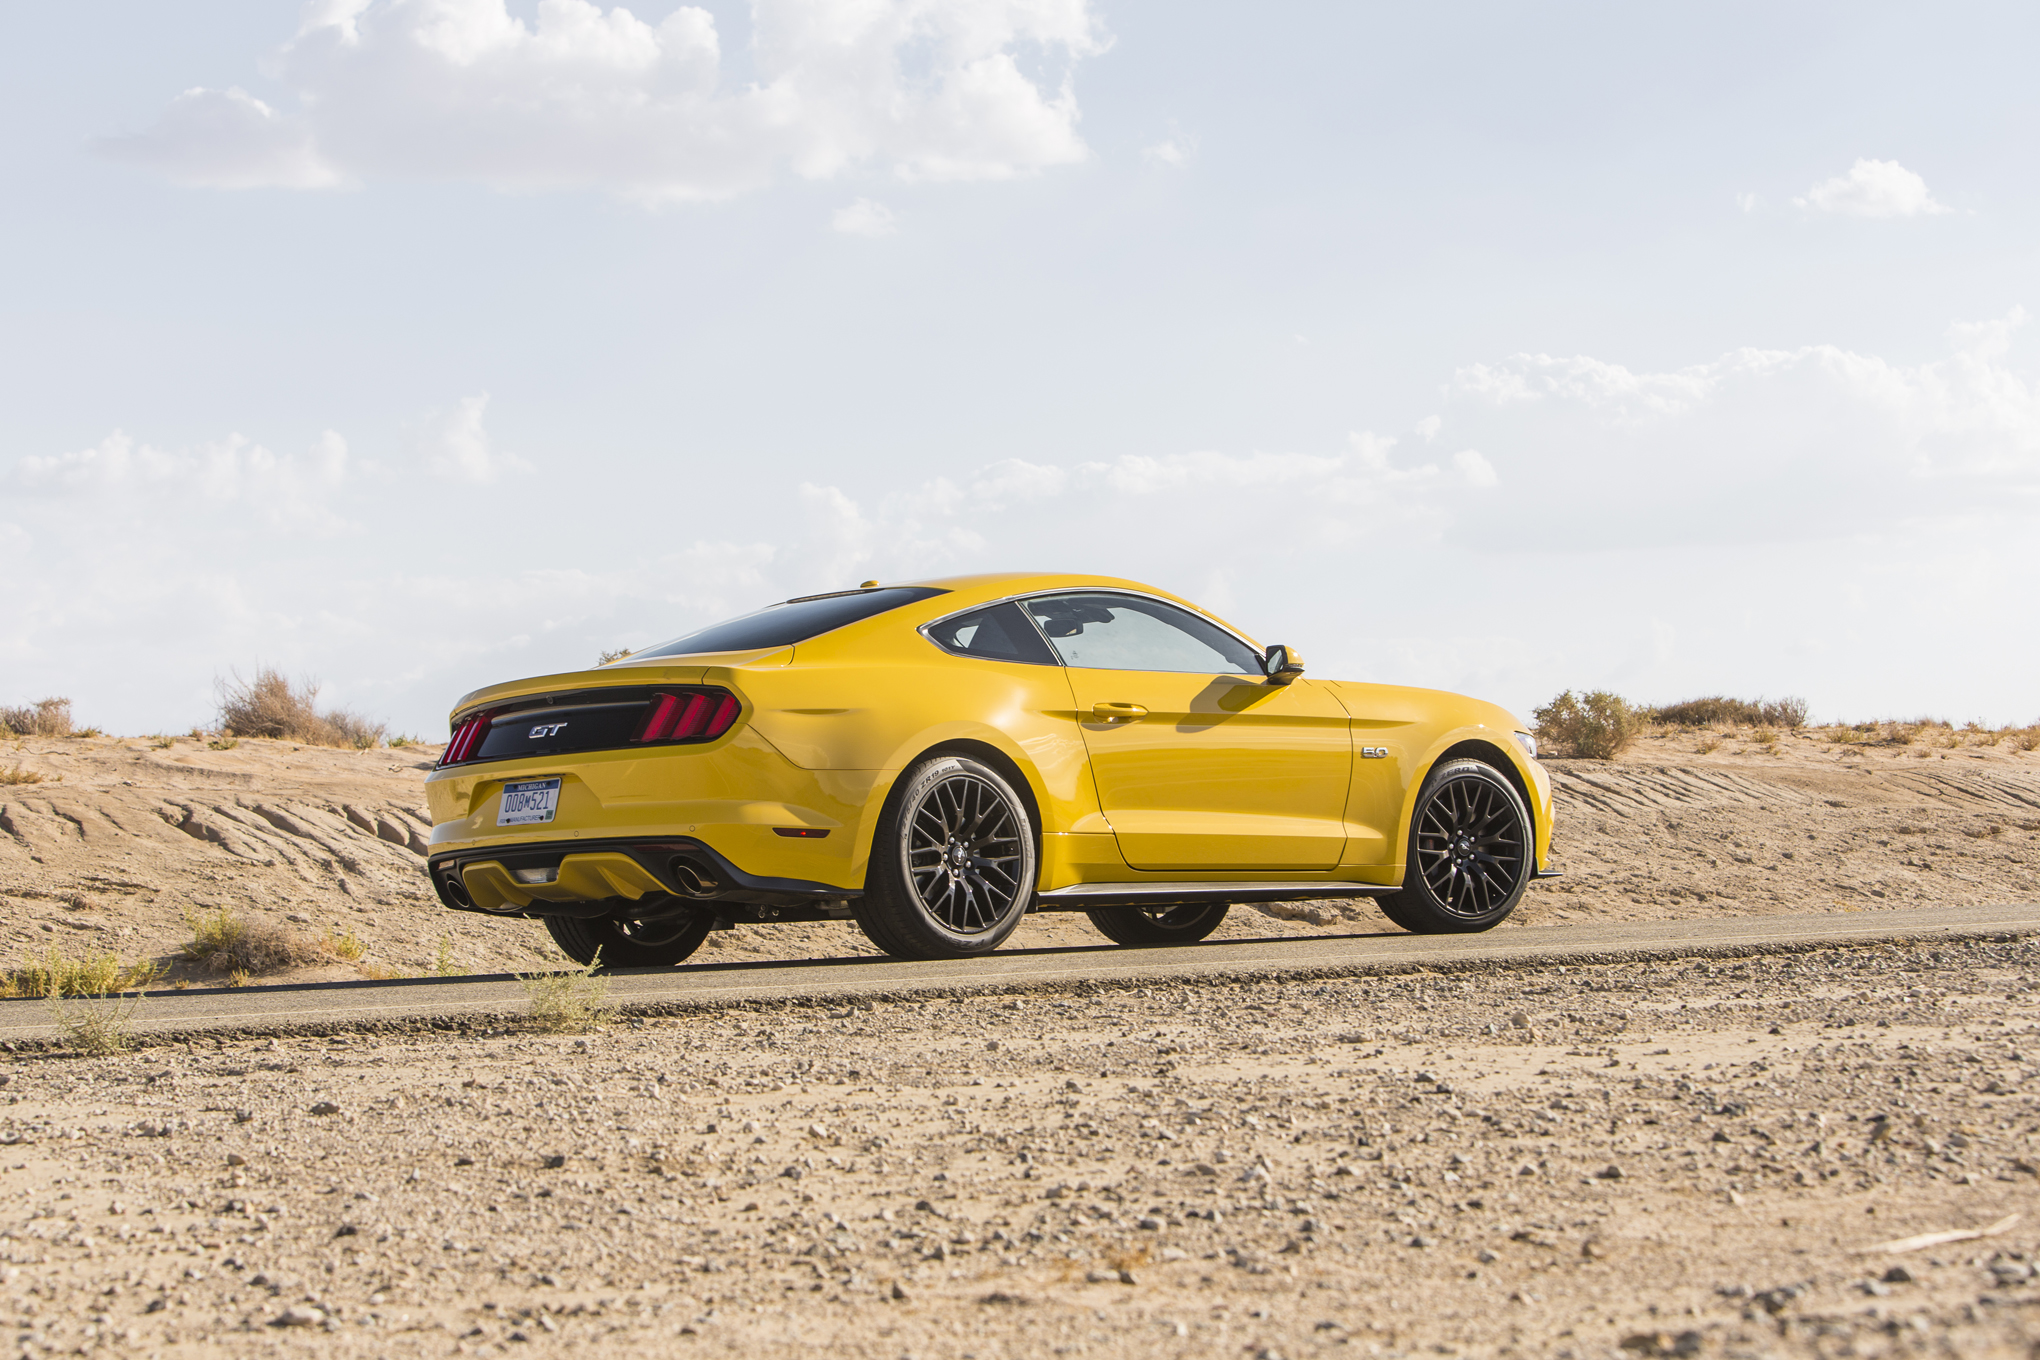 2015 Ford Mustang Gt Rear Side Photo (Photo 18 of 30)